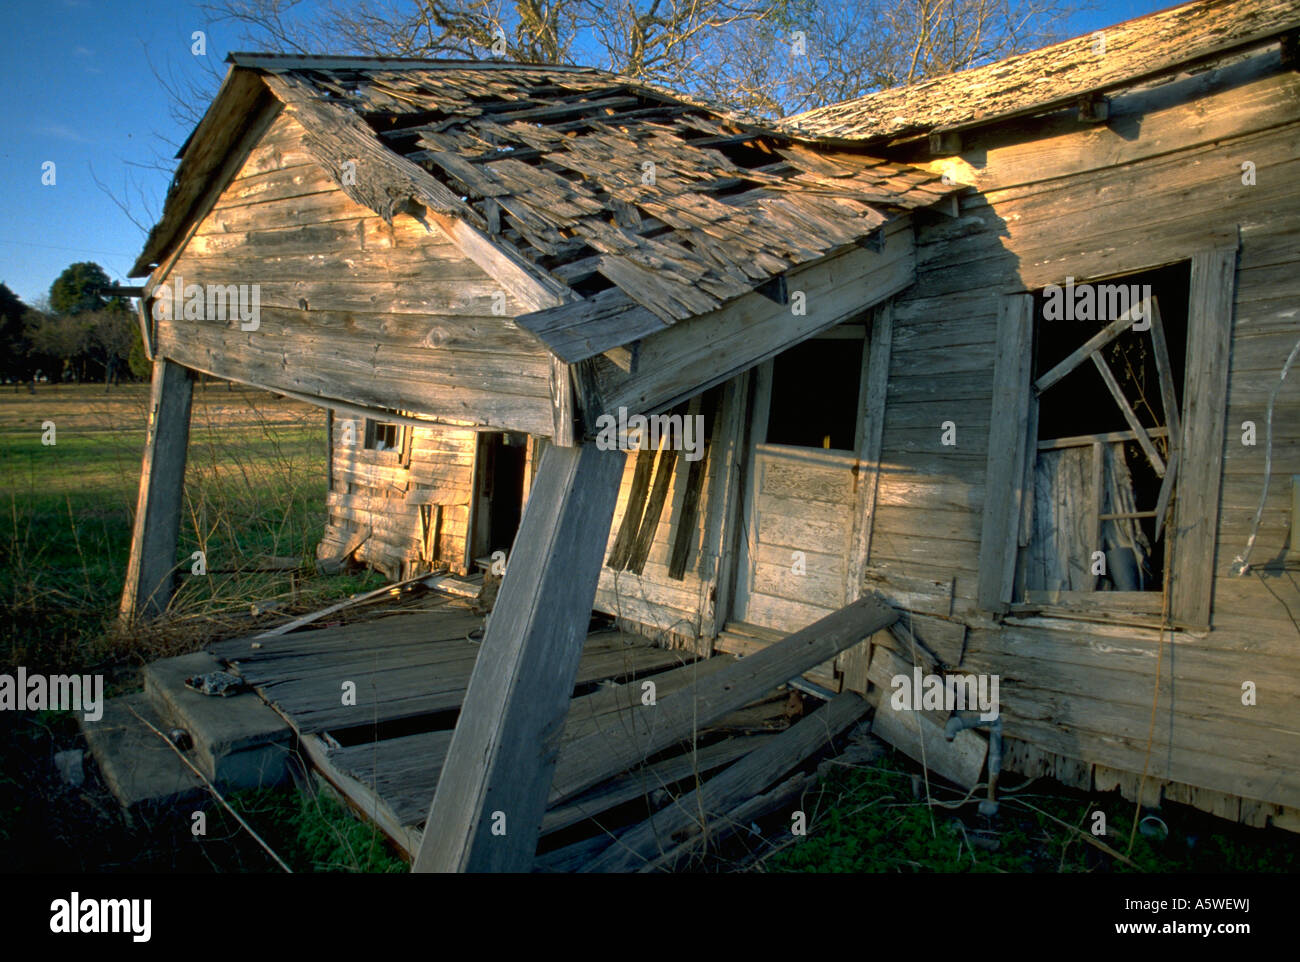 Painet hl0148 texas shack home house falling apart old decay rot